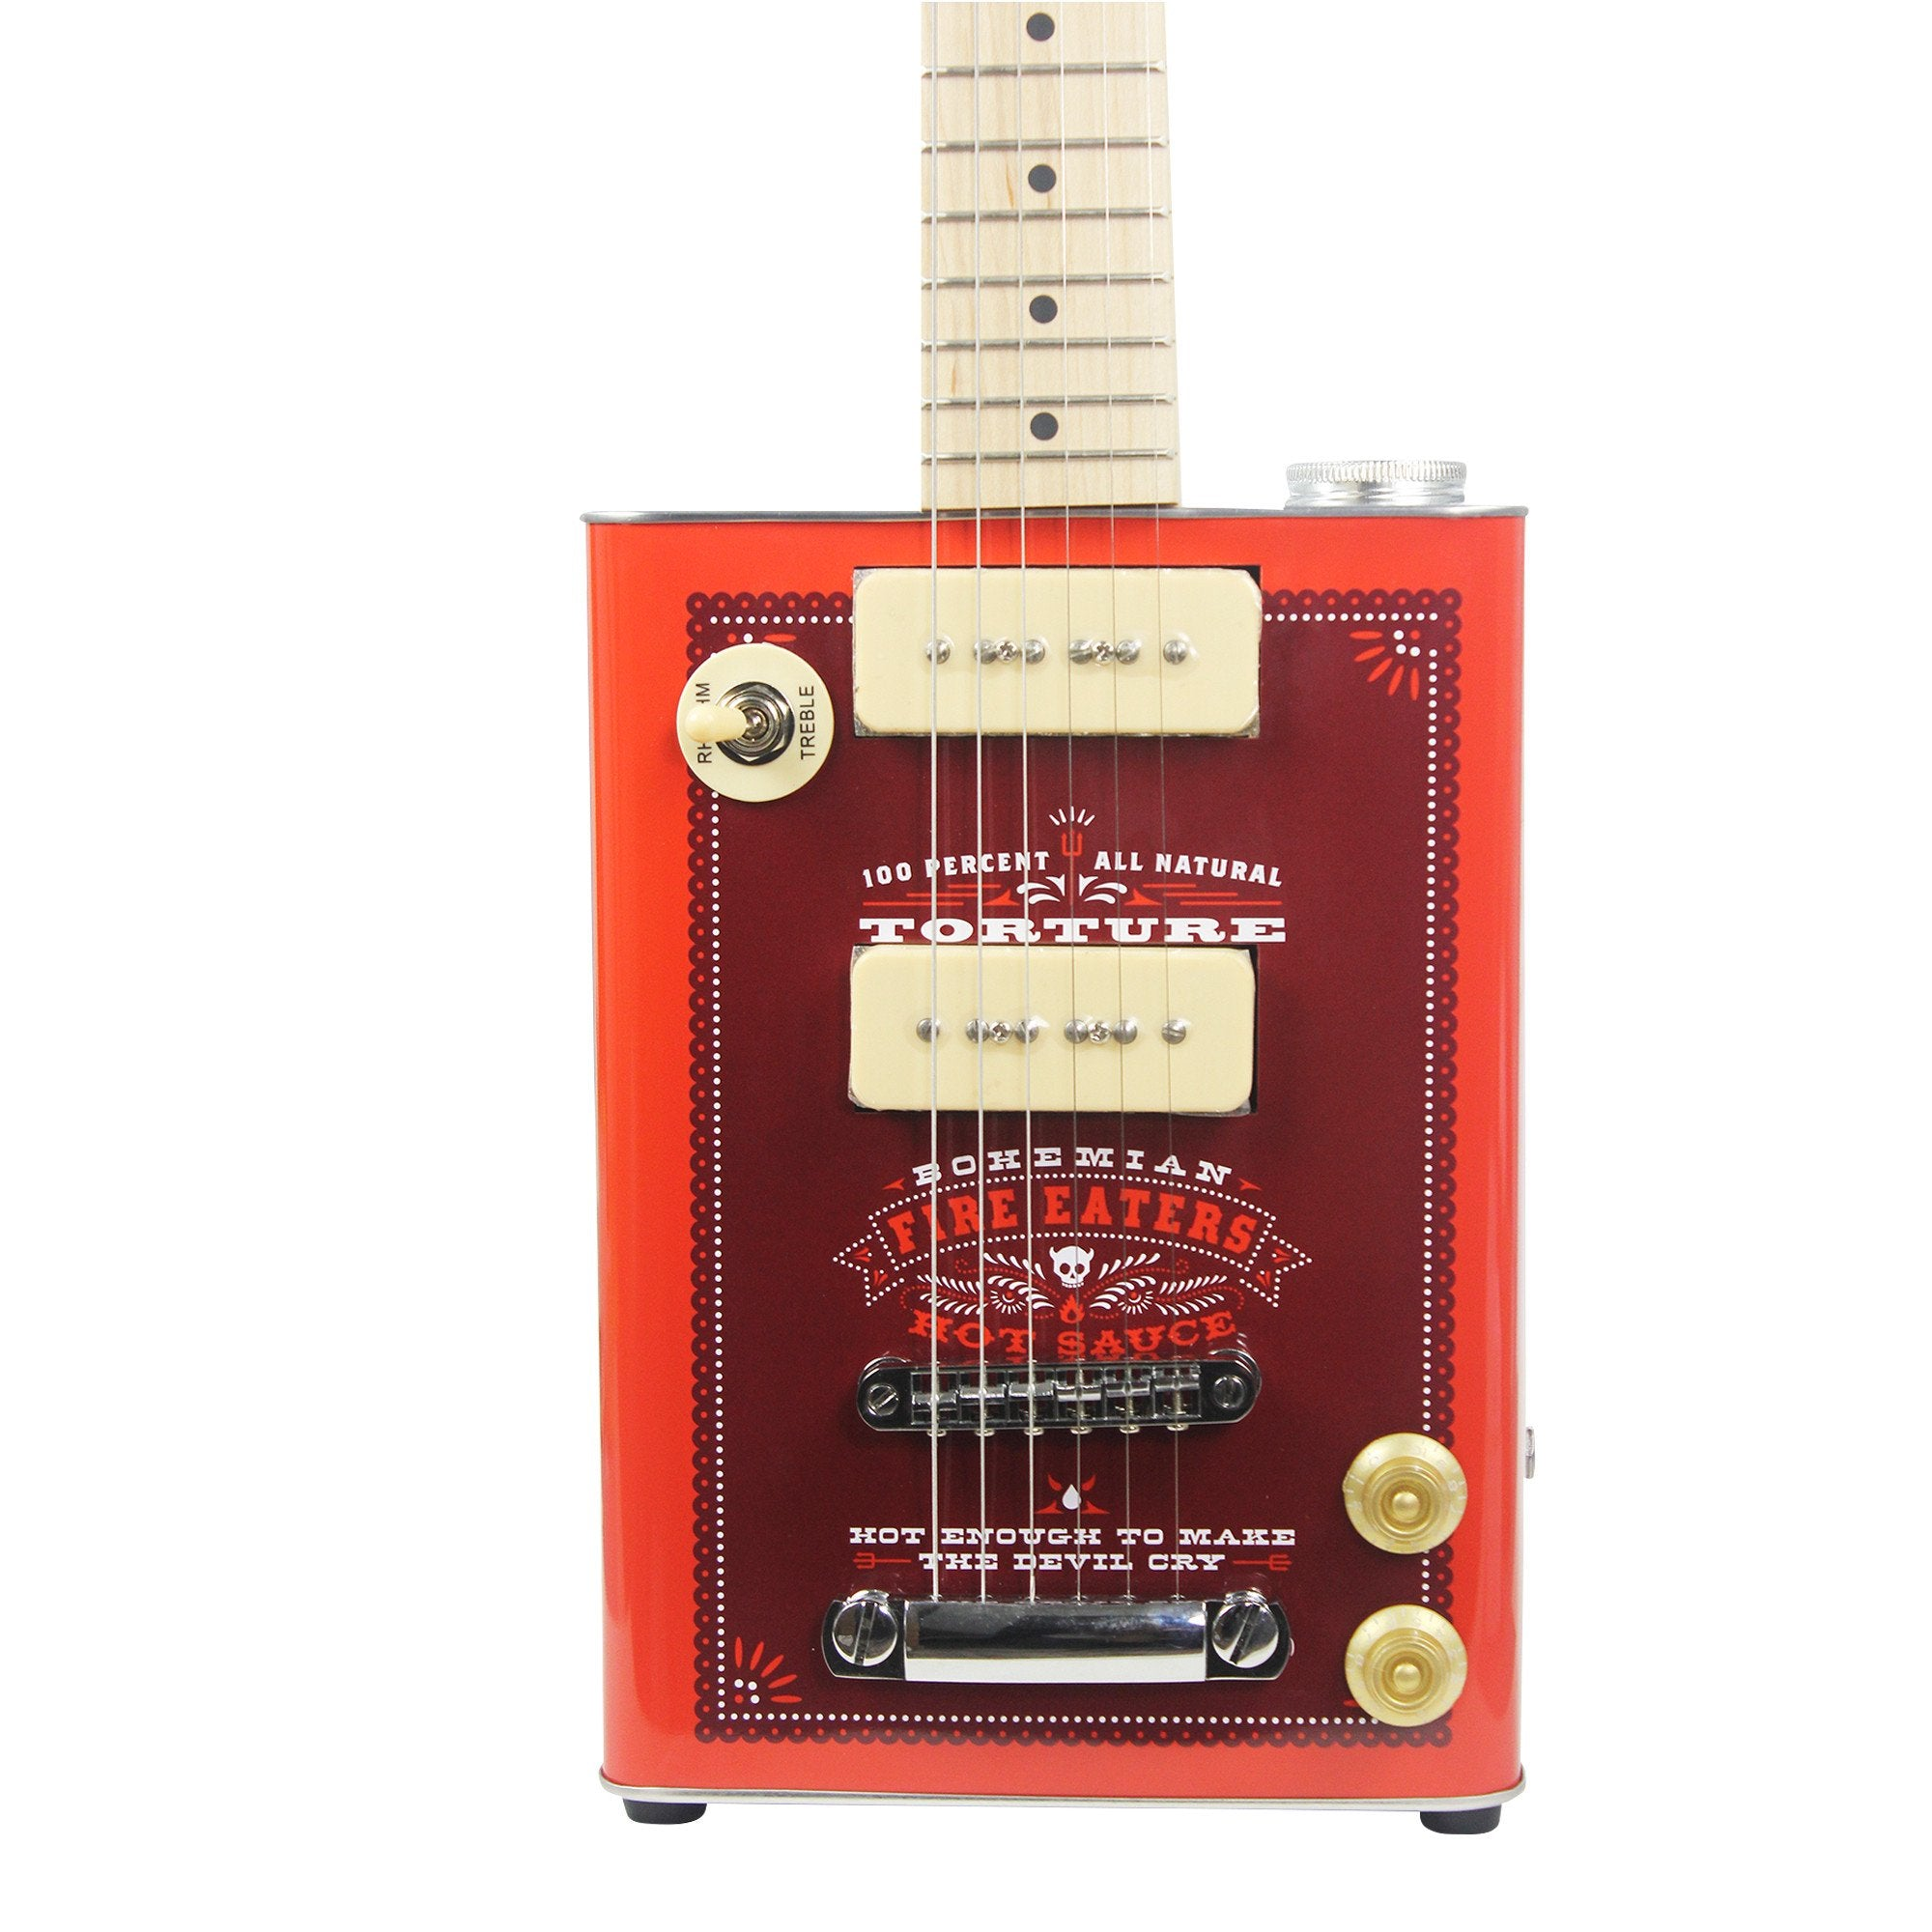 Guitar - PREMIER GUITAR EXCLUSIVE Bohemian Hot Sauce - Electric Oil Can Hollow-body Guitar -  2 X P90